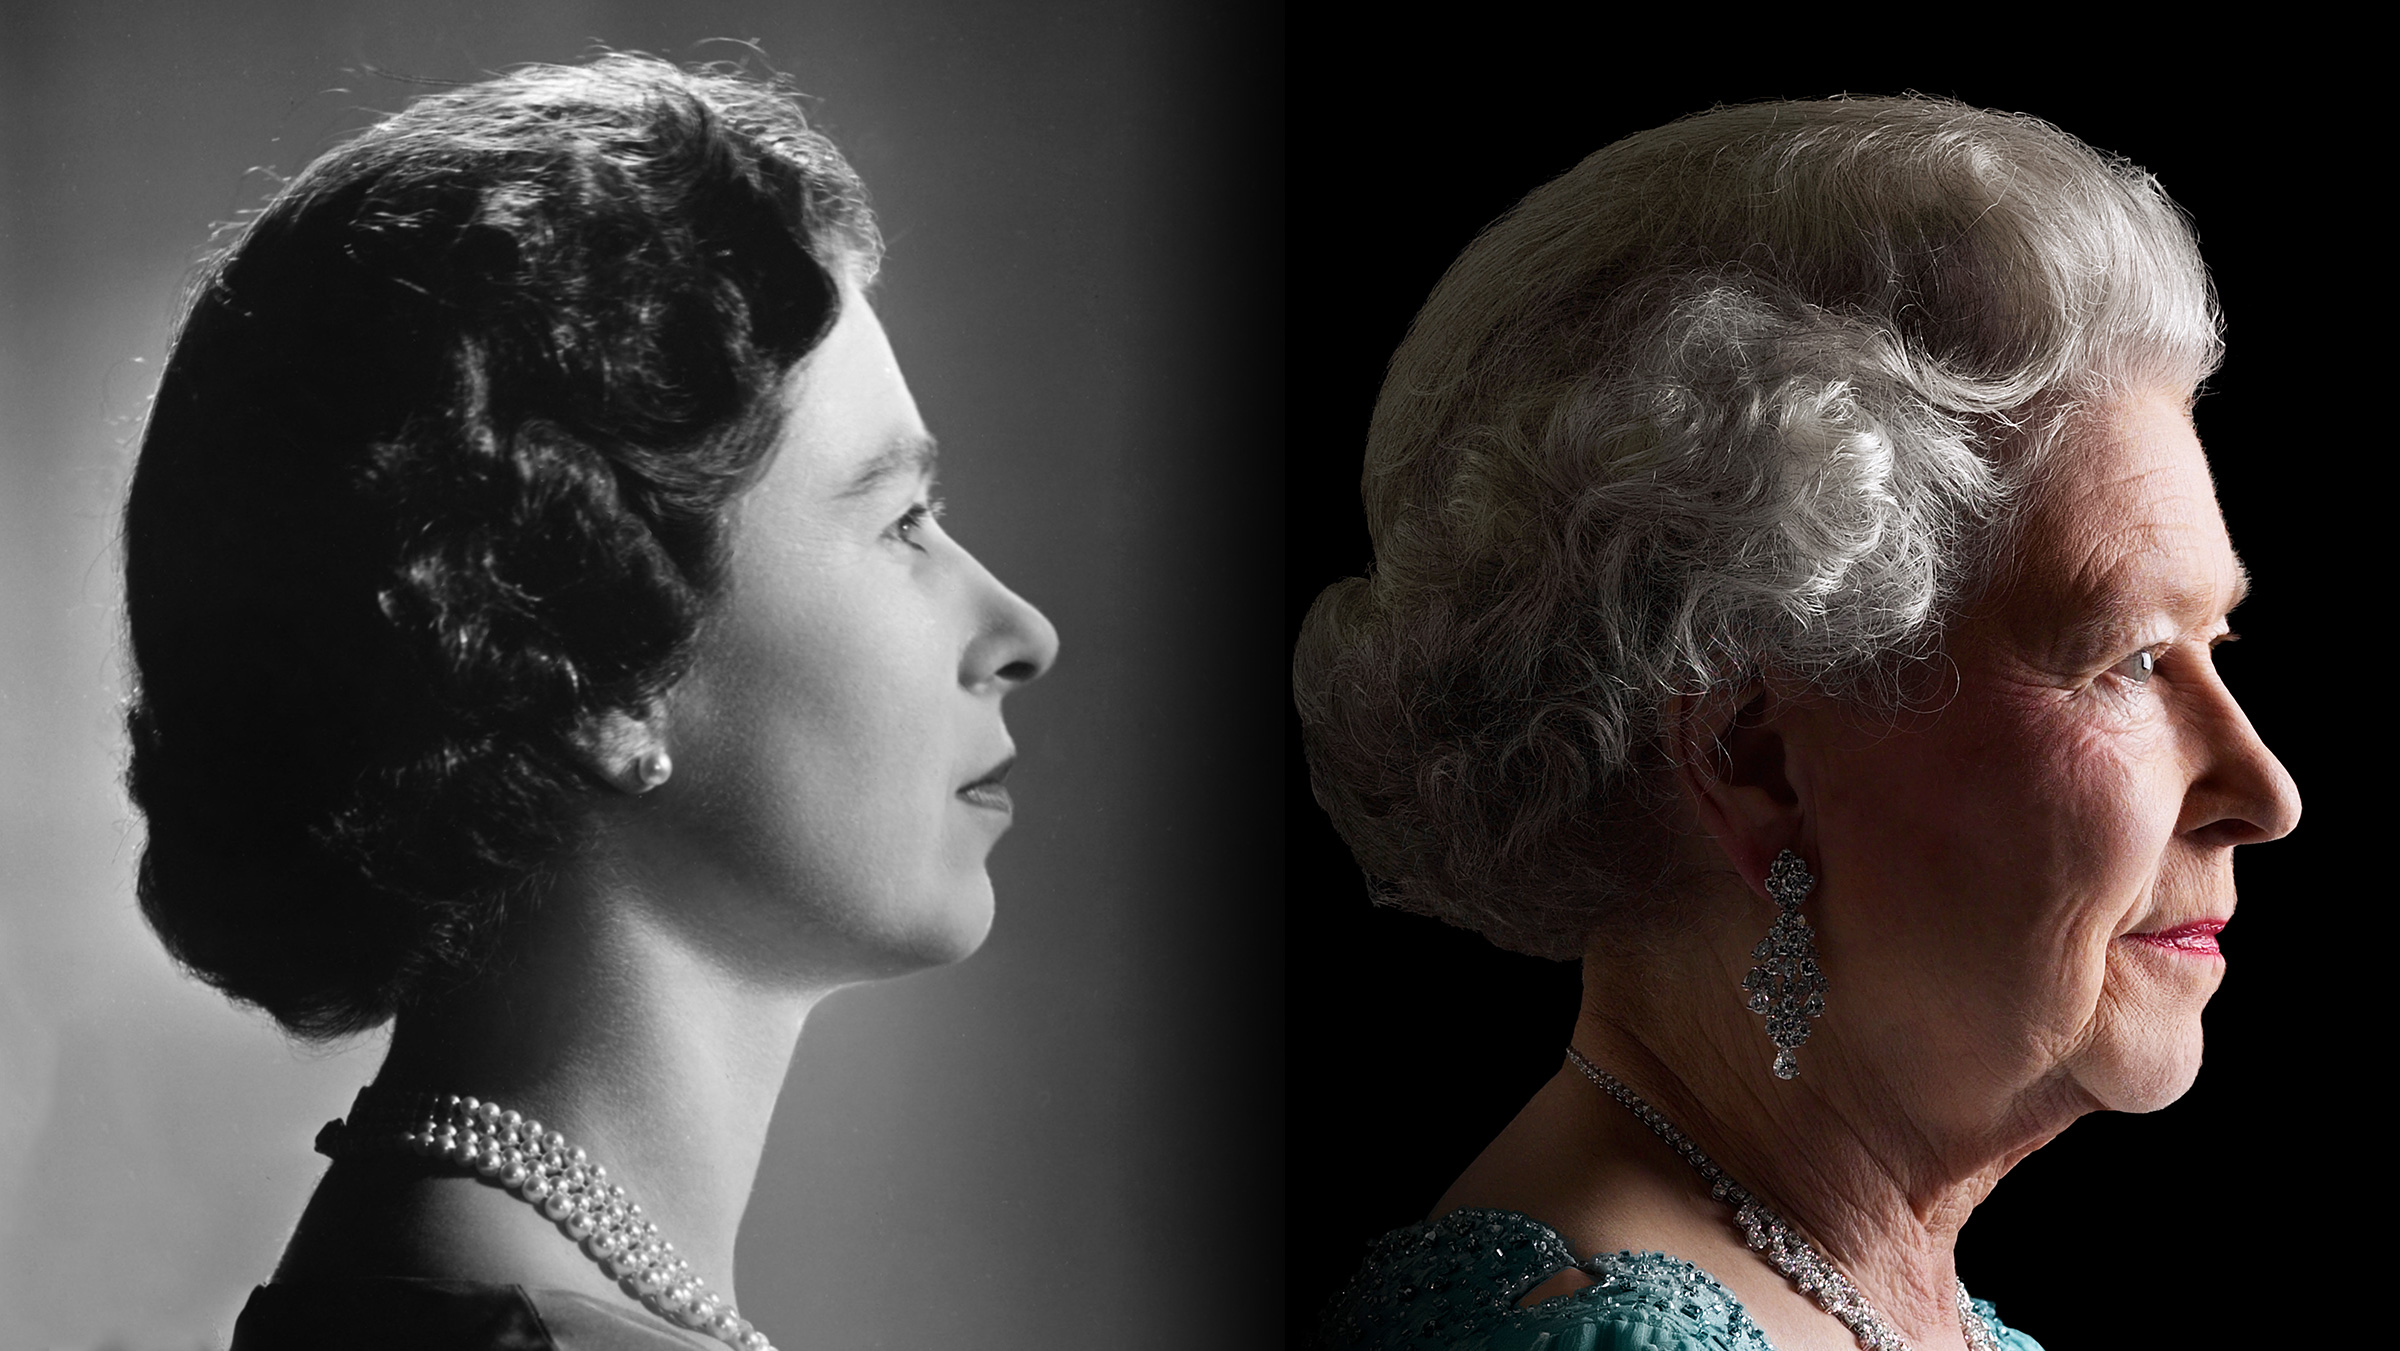 Queen Elizabeth II's Reign: Then and Now